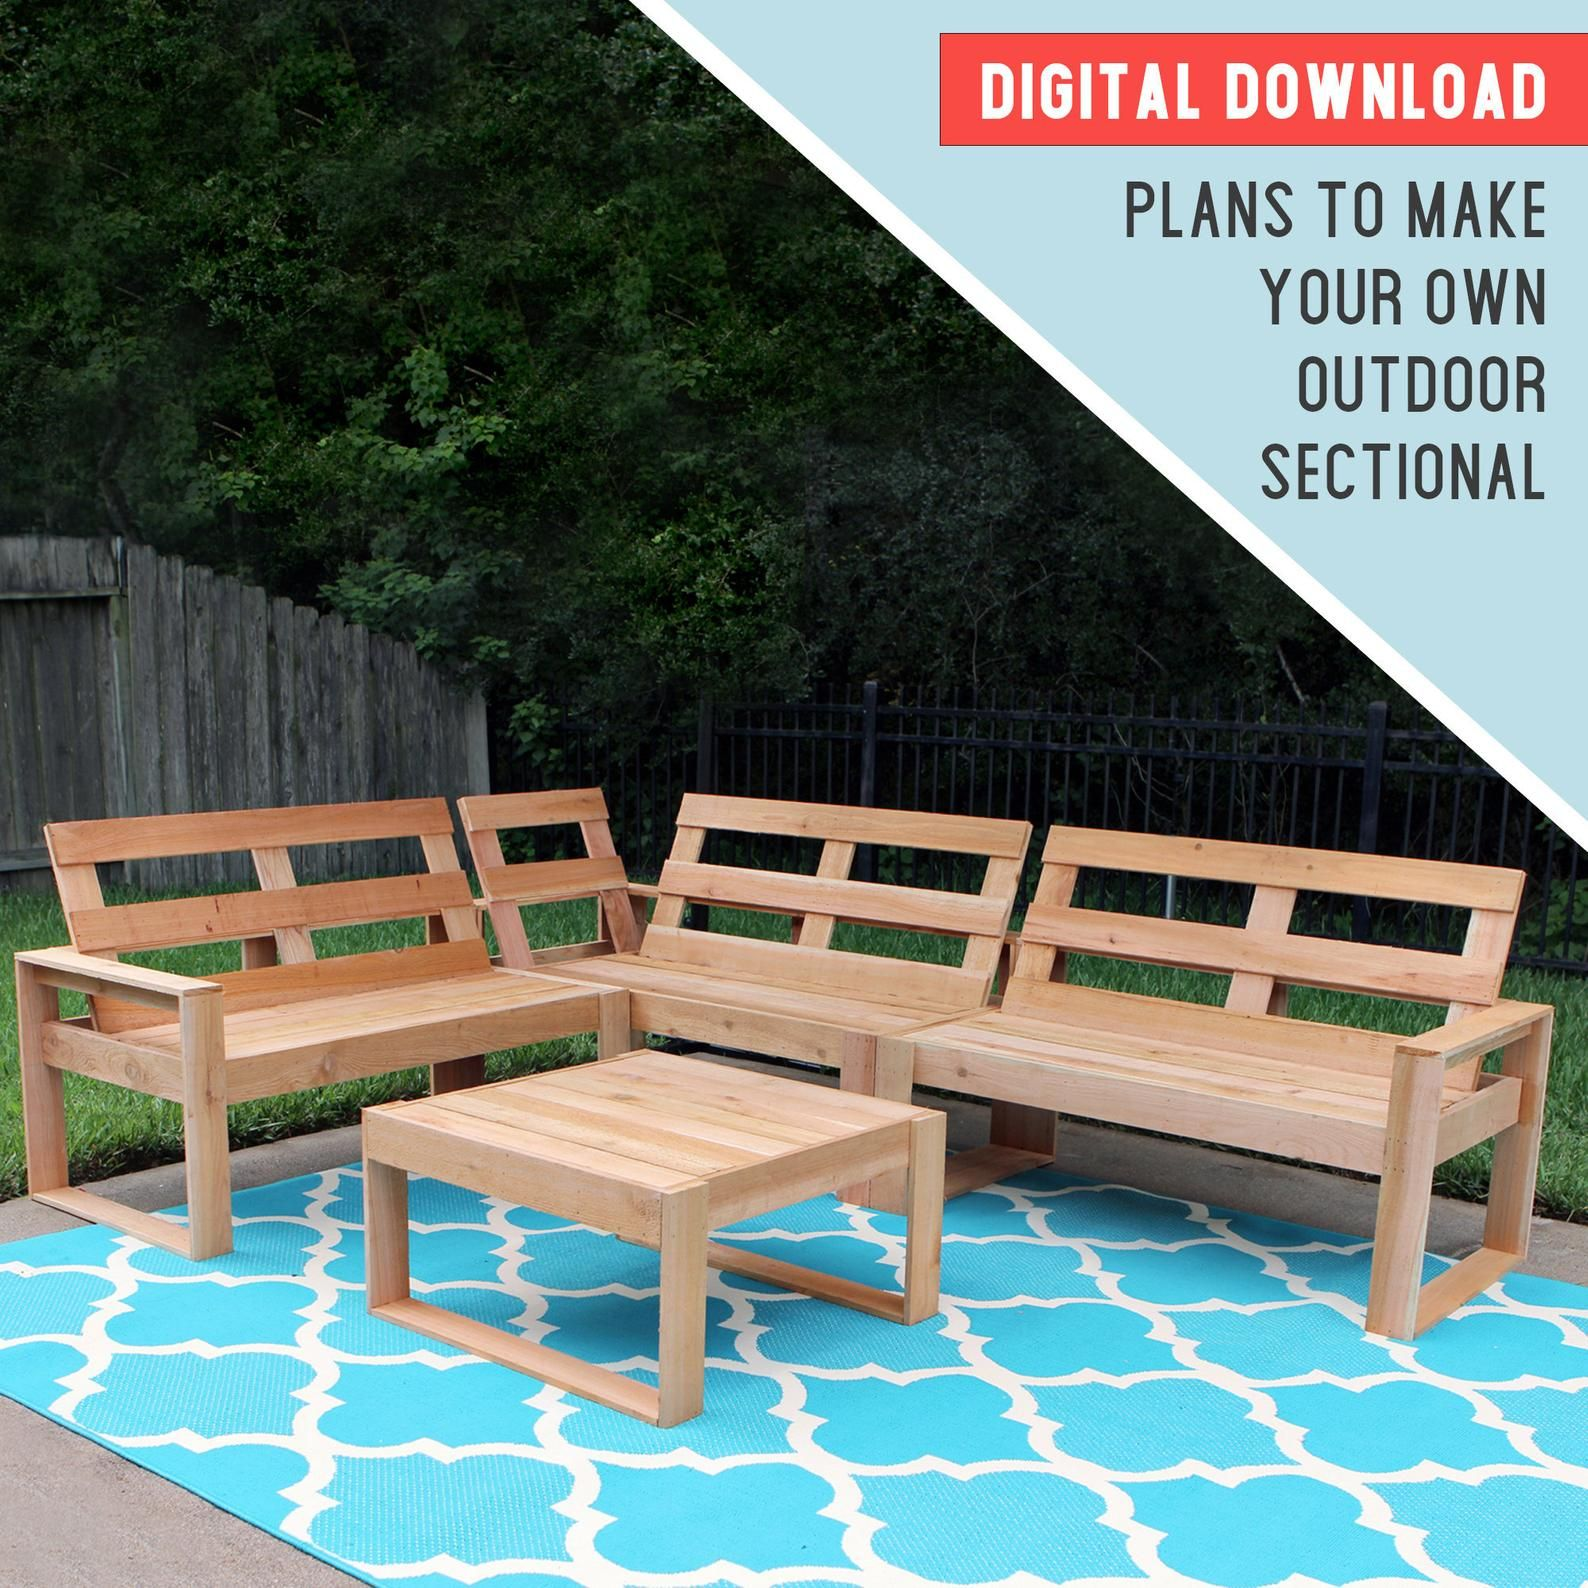 PLANS Outdoor Sectional Woodworking Plans Plans to build